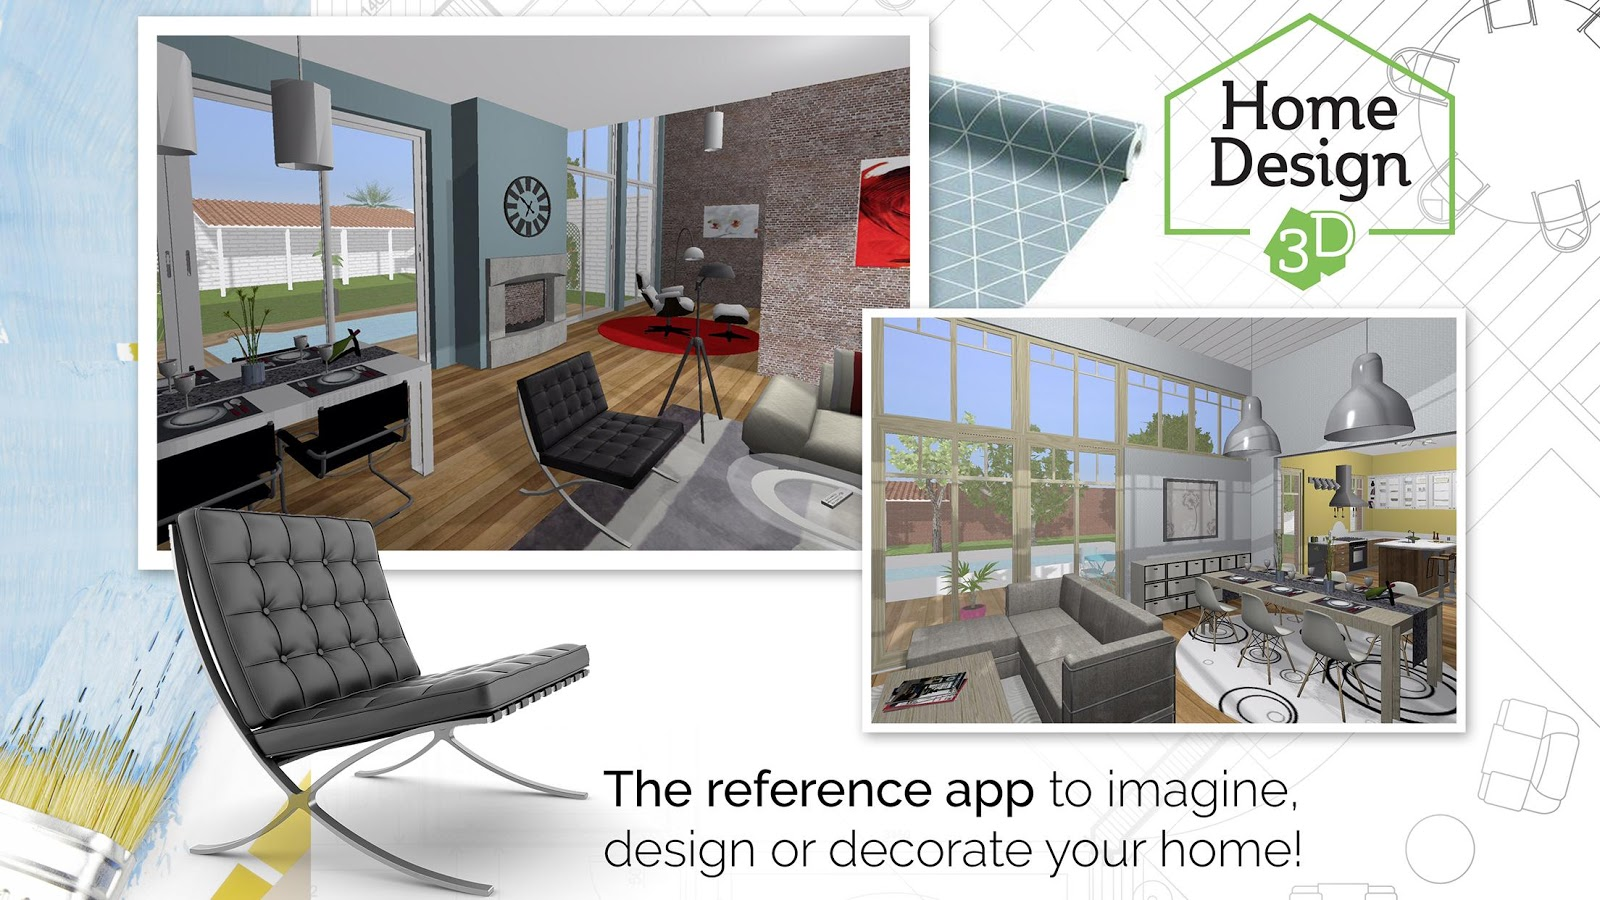 Home design 3d freemium android apps on google play for 3d house room design